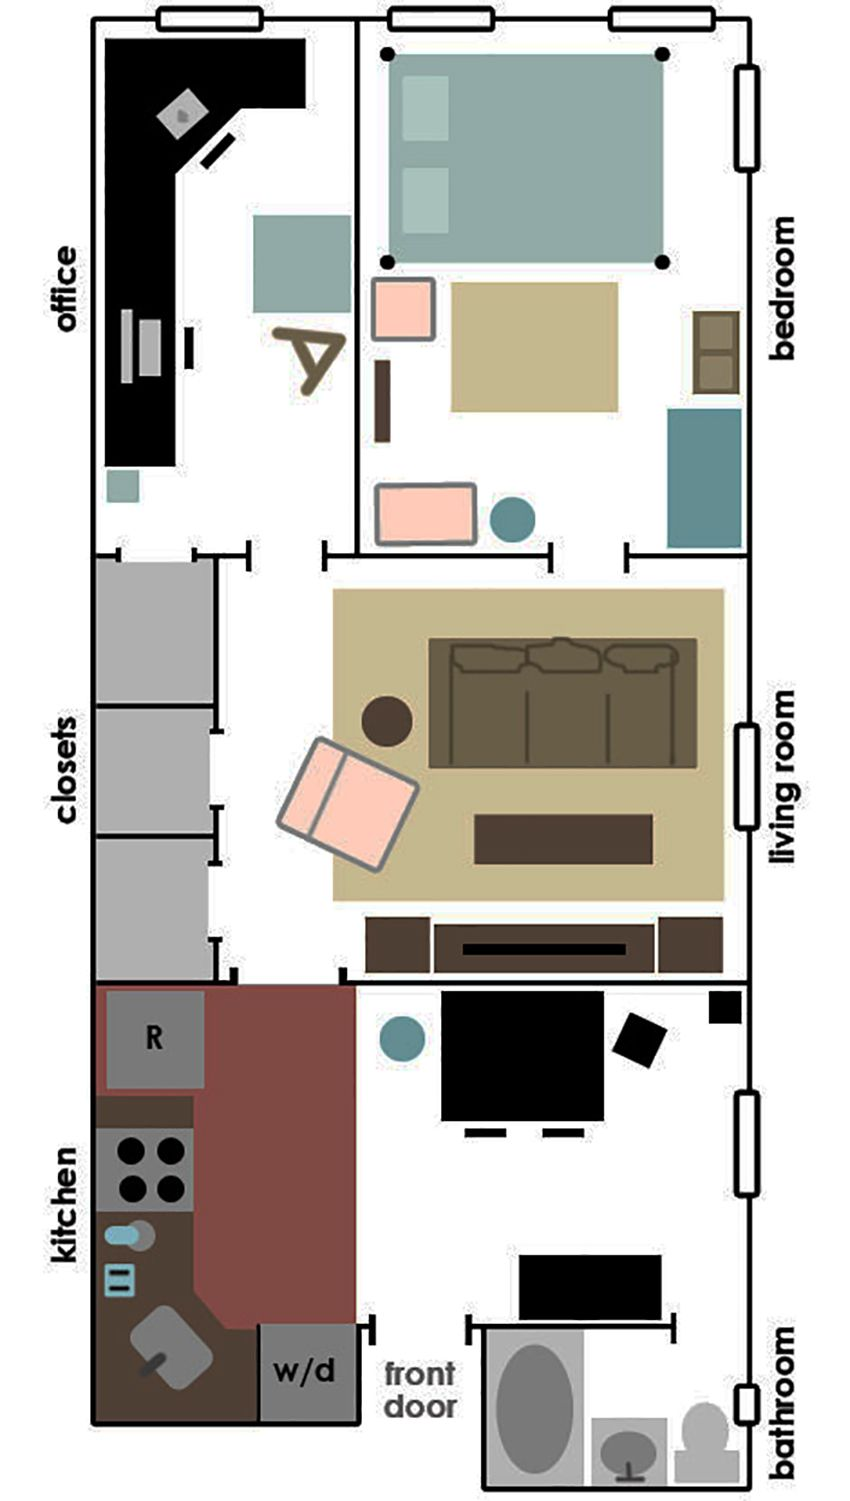 Apartment furniture layout planner home design and decor - Room layout planner free ...